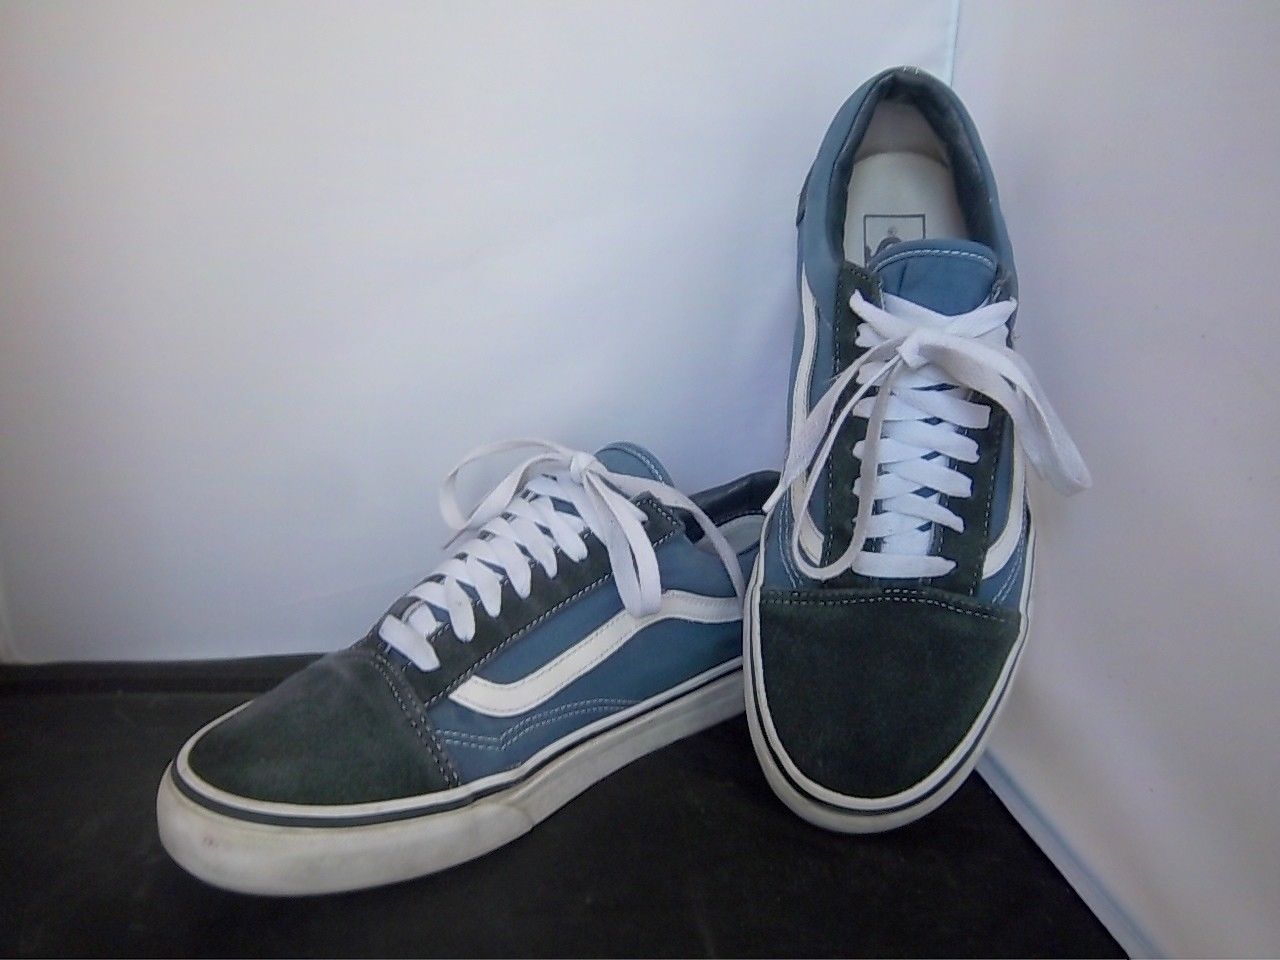 488dbe531d VANS - Unisex Blue Canvas Suede Shoes - SIZE and 50 similar items